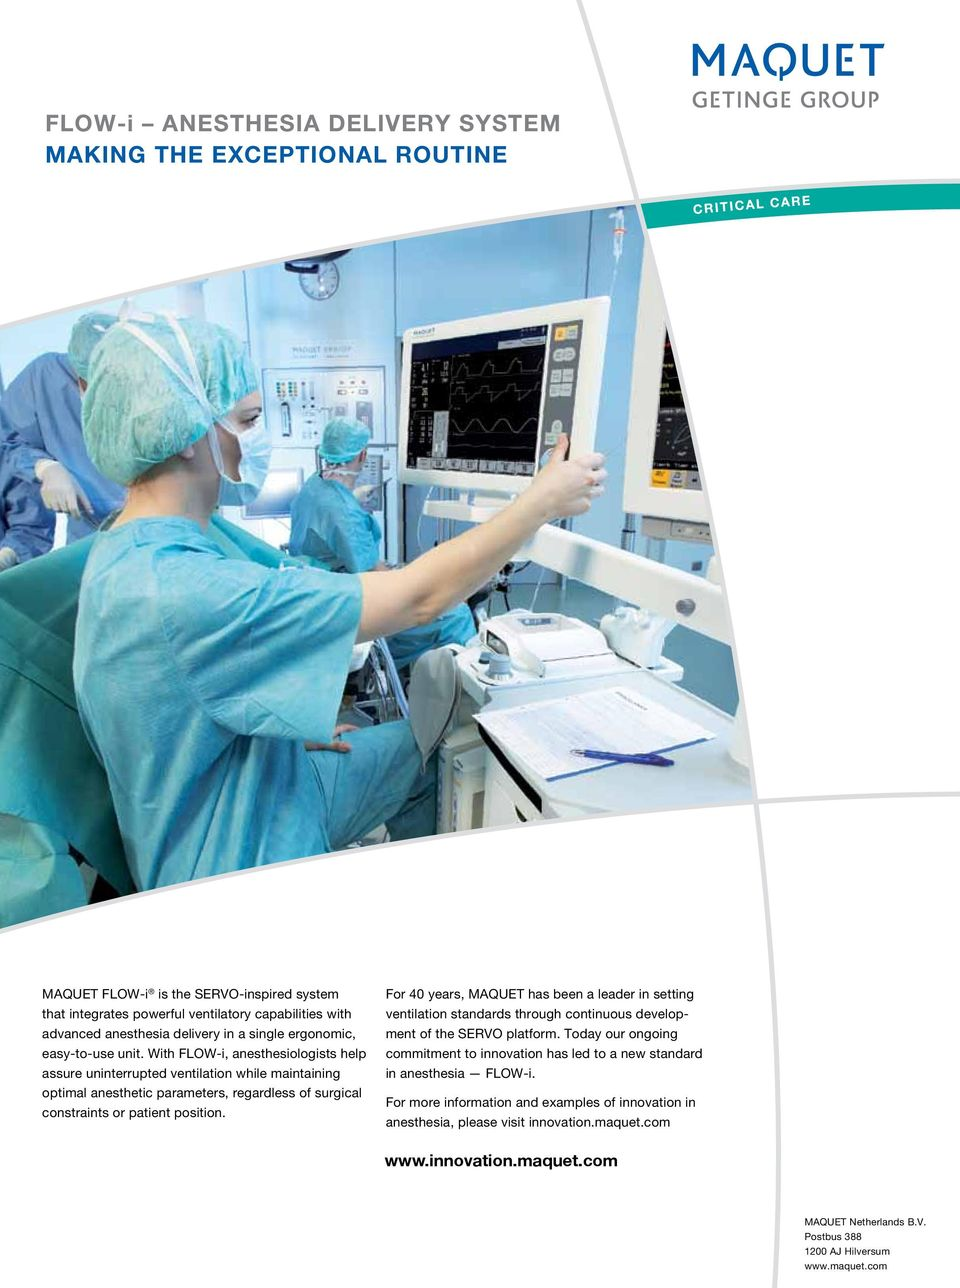 FLOW-i brings together high ventilation capabilities MAQUET with modern FLOW-i anesthesia is SERVO-inspired delivery features, system thus enhancing the perioperative care of high risk and that